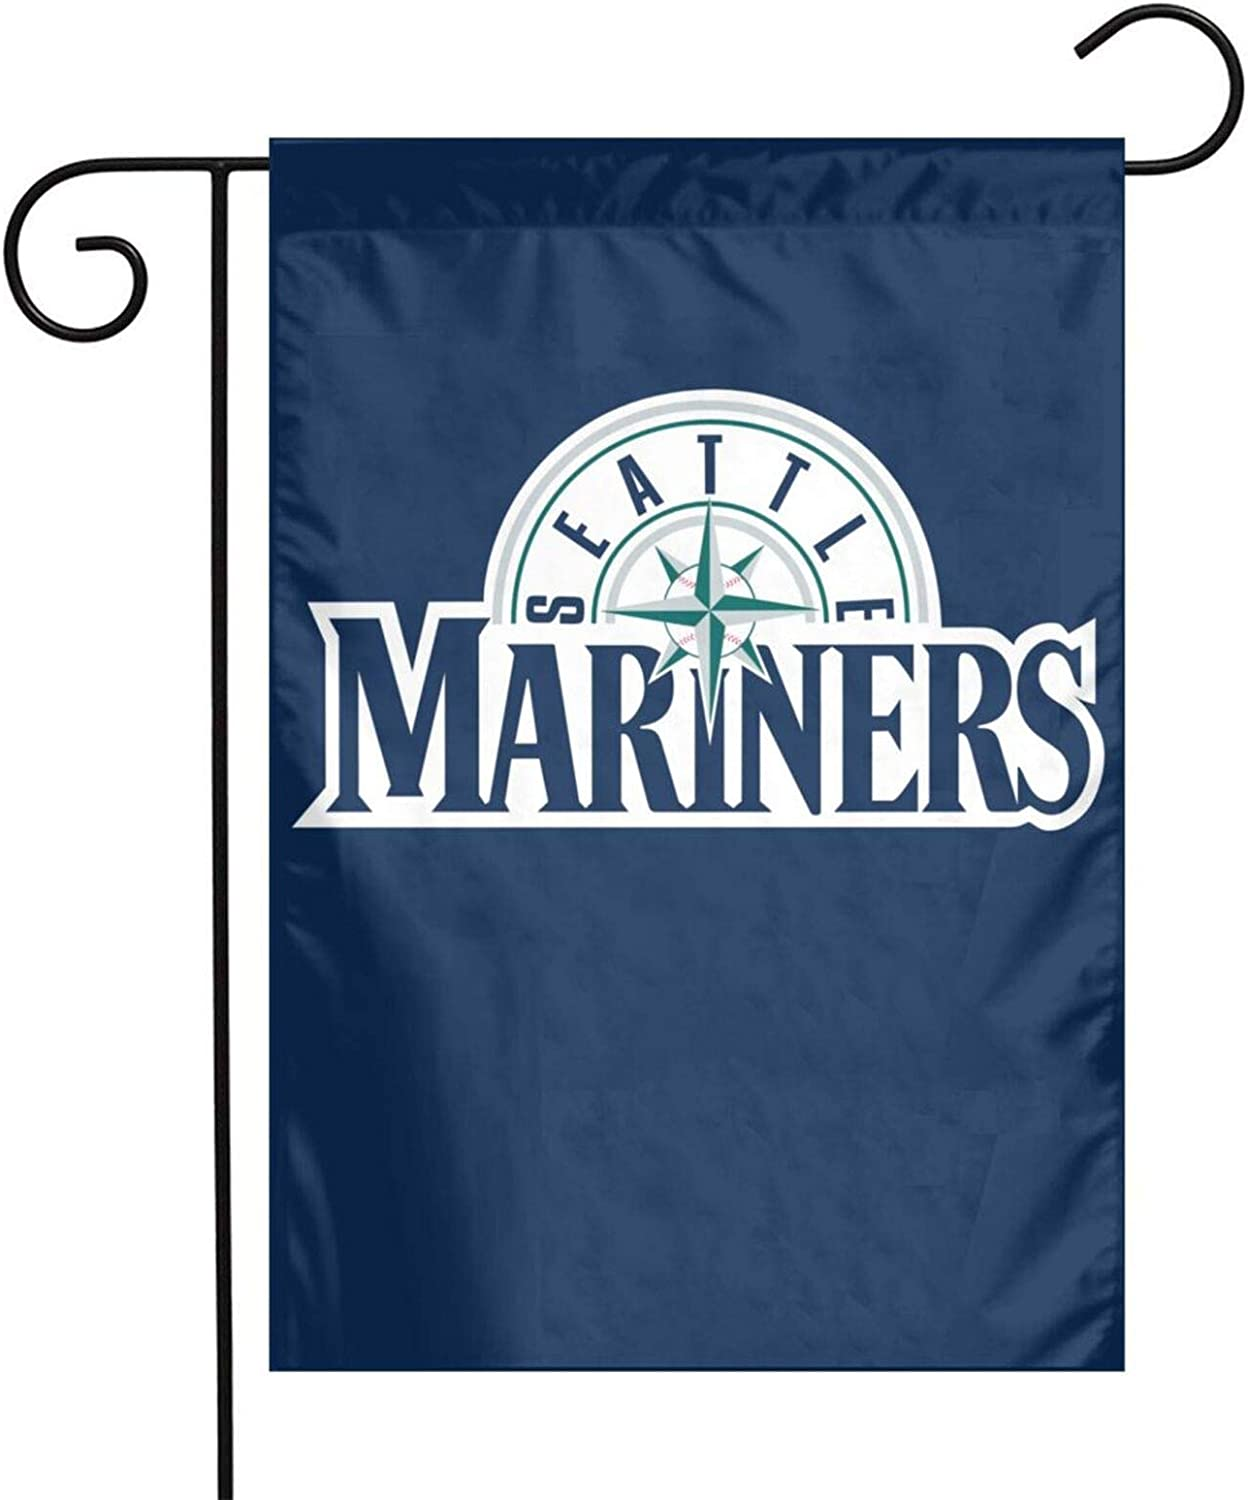 Lilian Ralap Se-at-Tl-E Mariners Garden Flag,Home Rustic Garden Yard Decorations,Seasonal Outdoor Flag 12 X 18inches